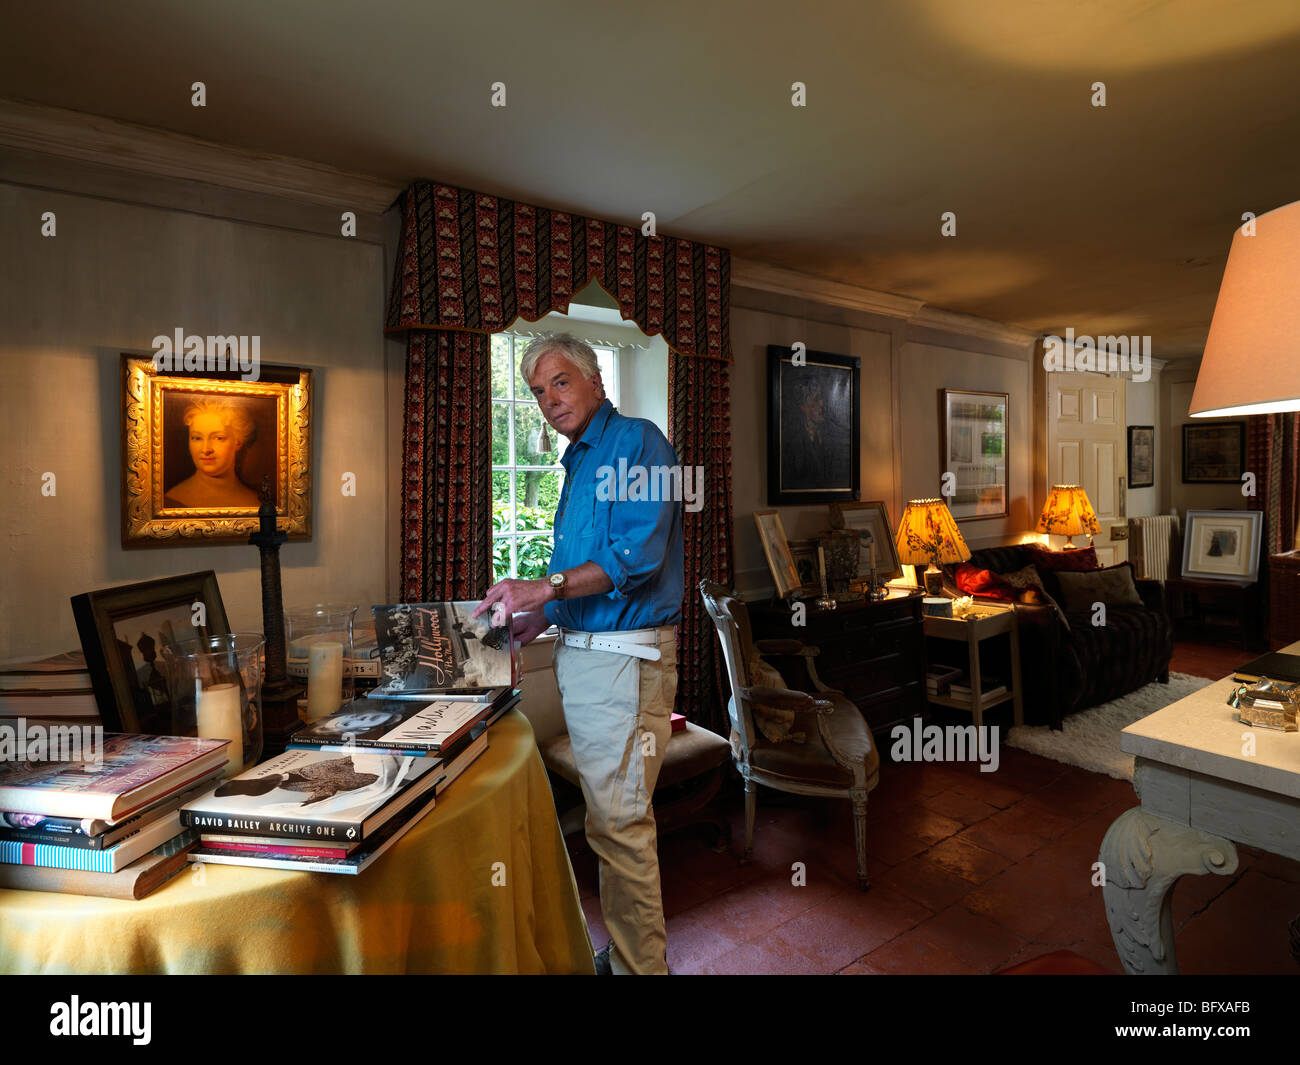 British Interior Designer Nicky Haslam Pictured In His Hampshire Home